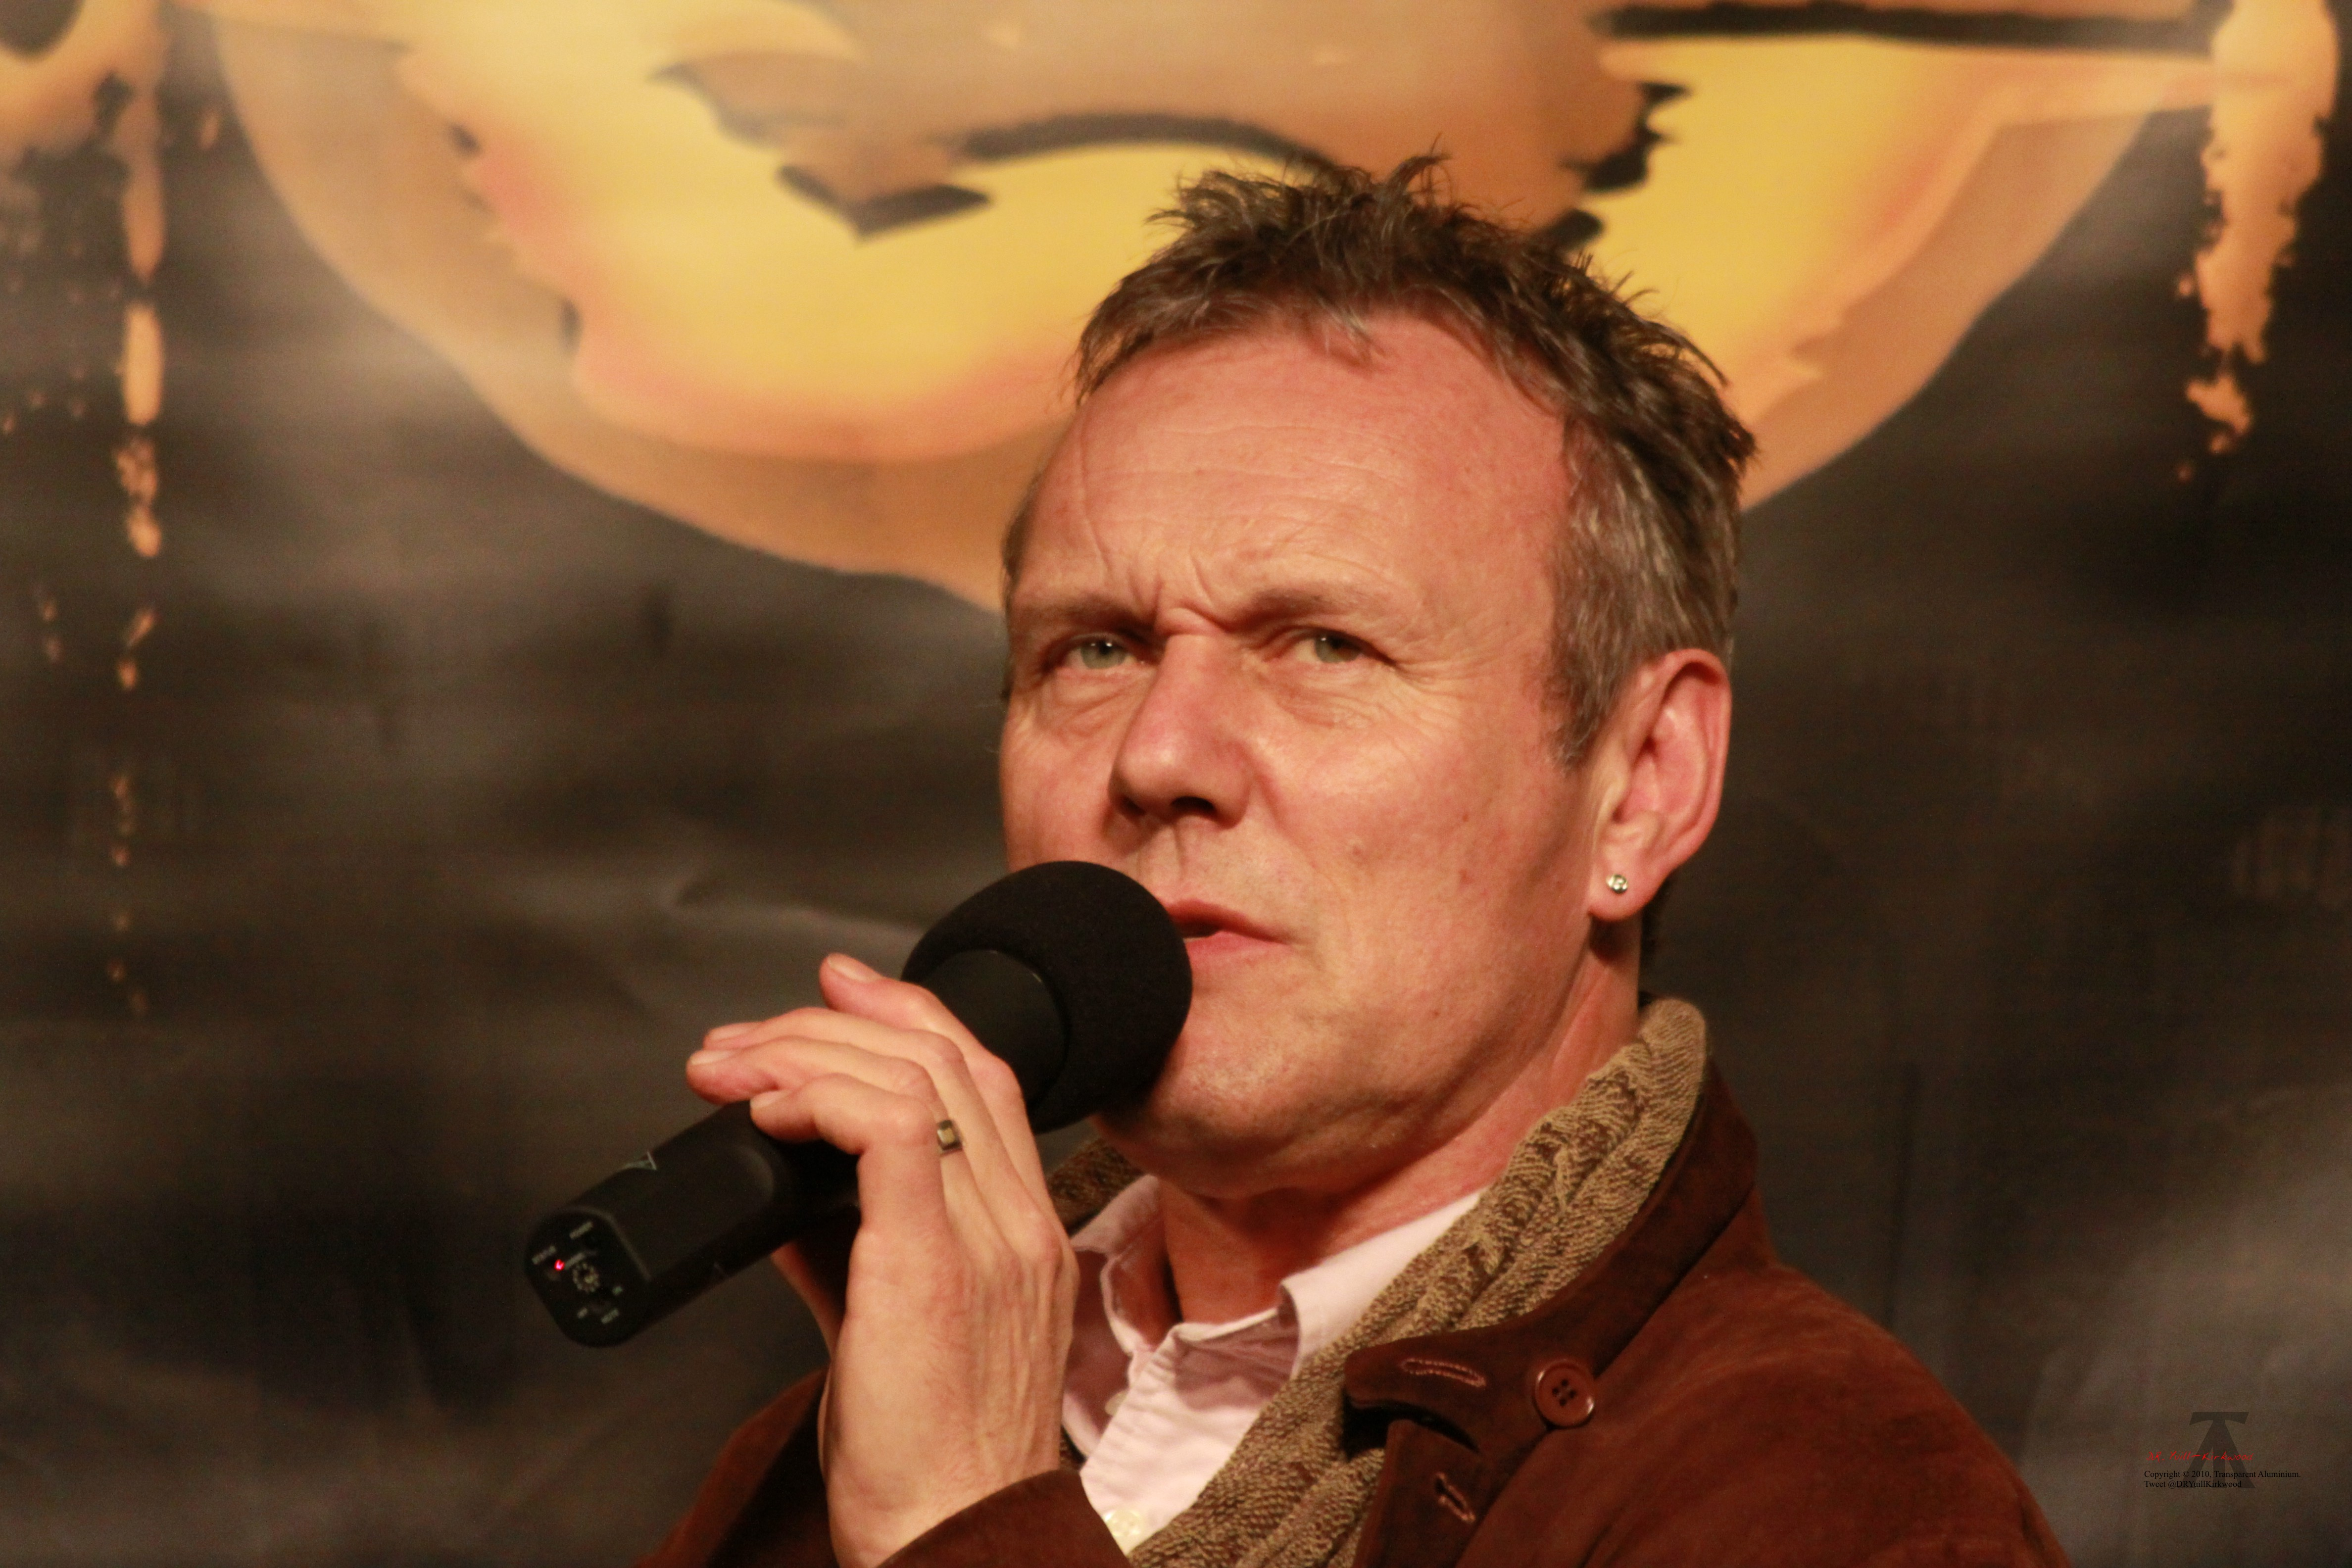 Anthony Head hd wallpaper Wallpaper